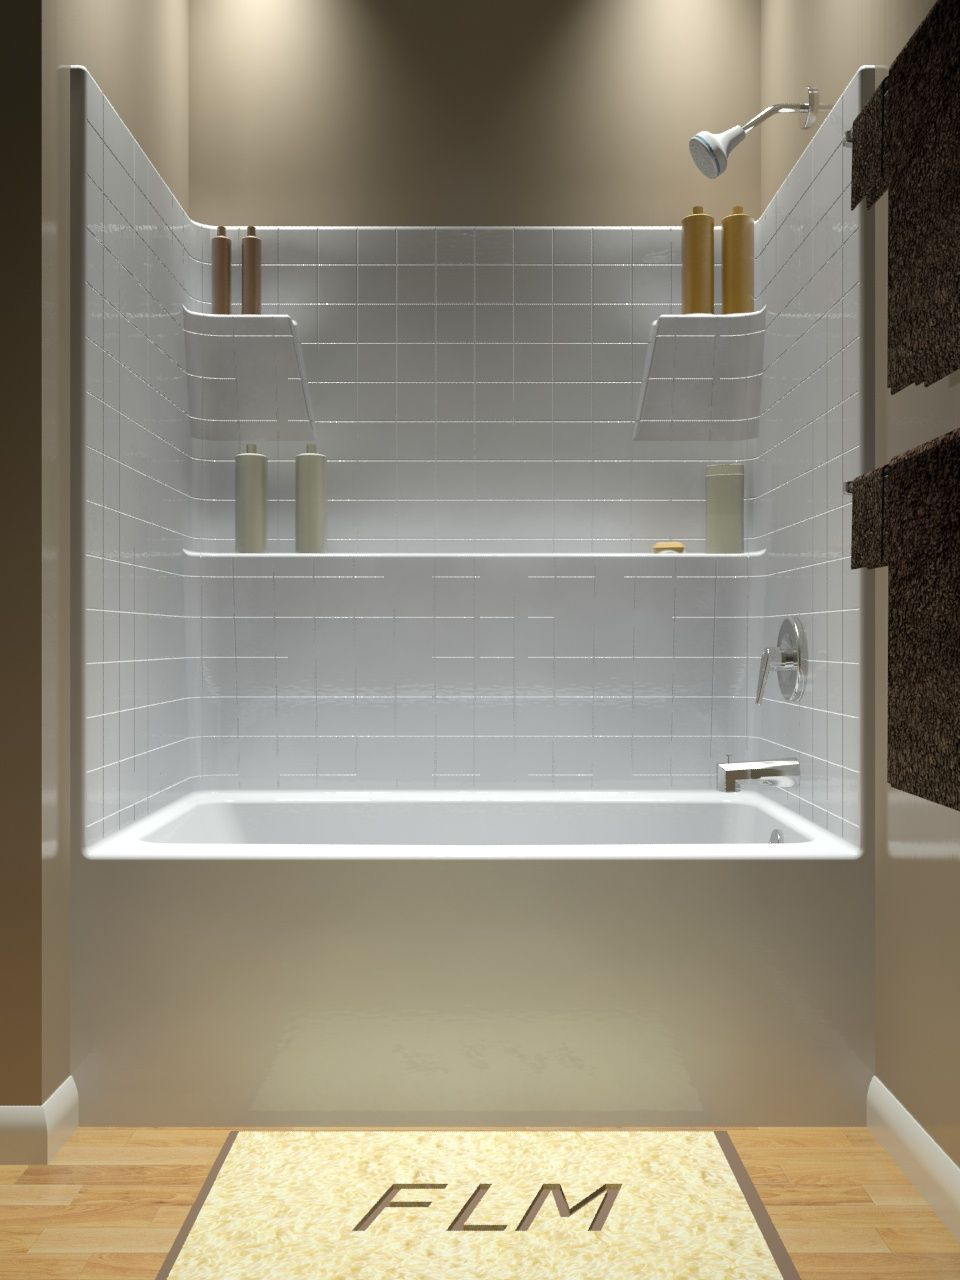 tub and shower one piece another diamond option with more shelf small white corner tub shower combo for bathroom furniture design inspirations with rectangle shaped white bathtub style that have metal stainless steel